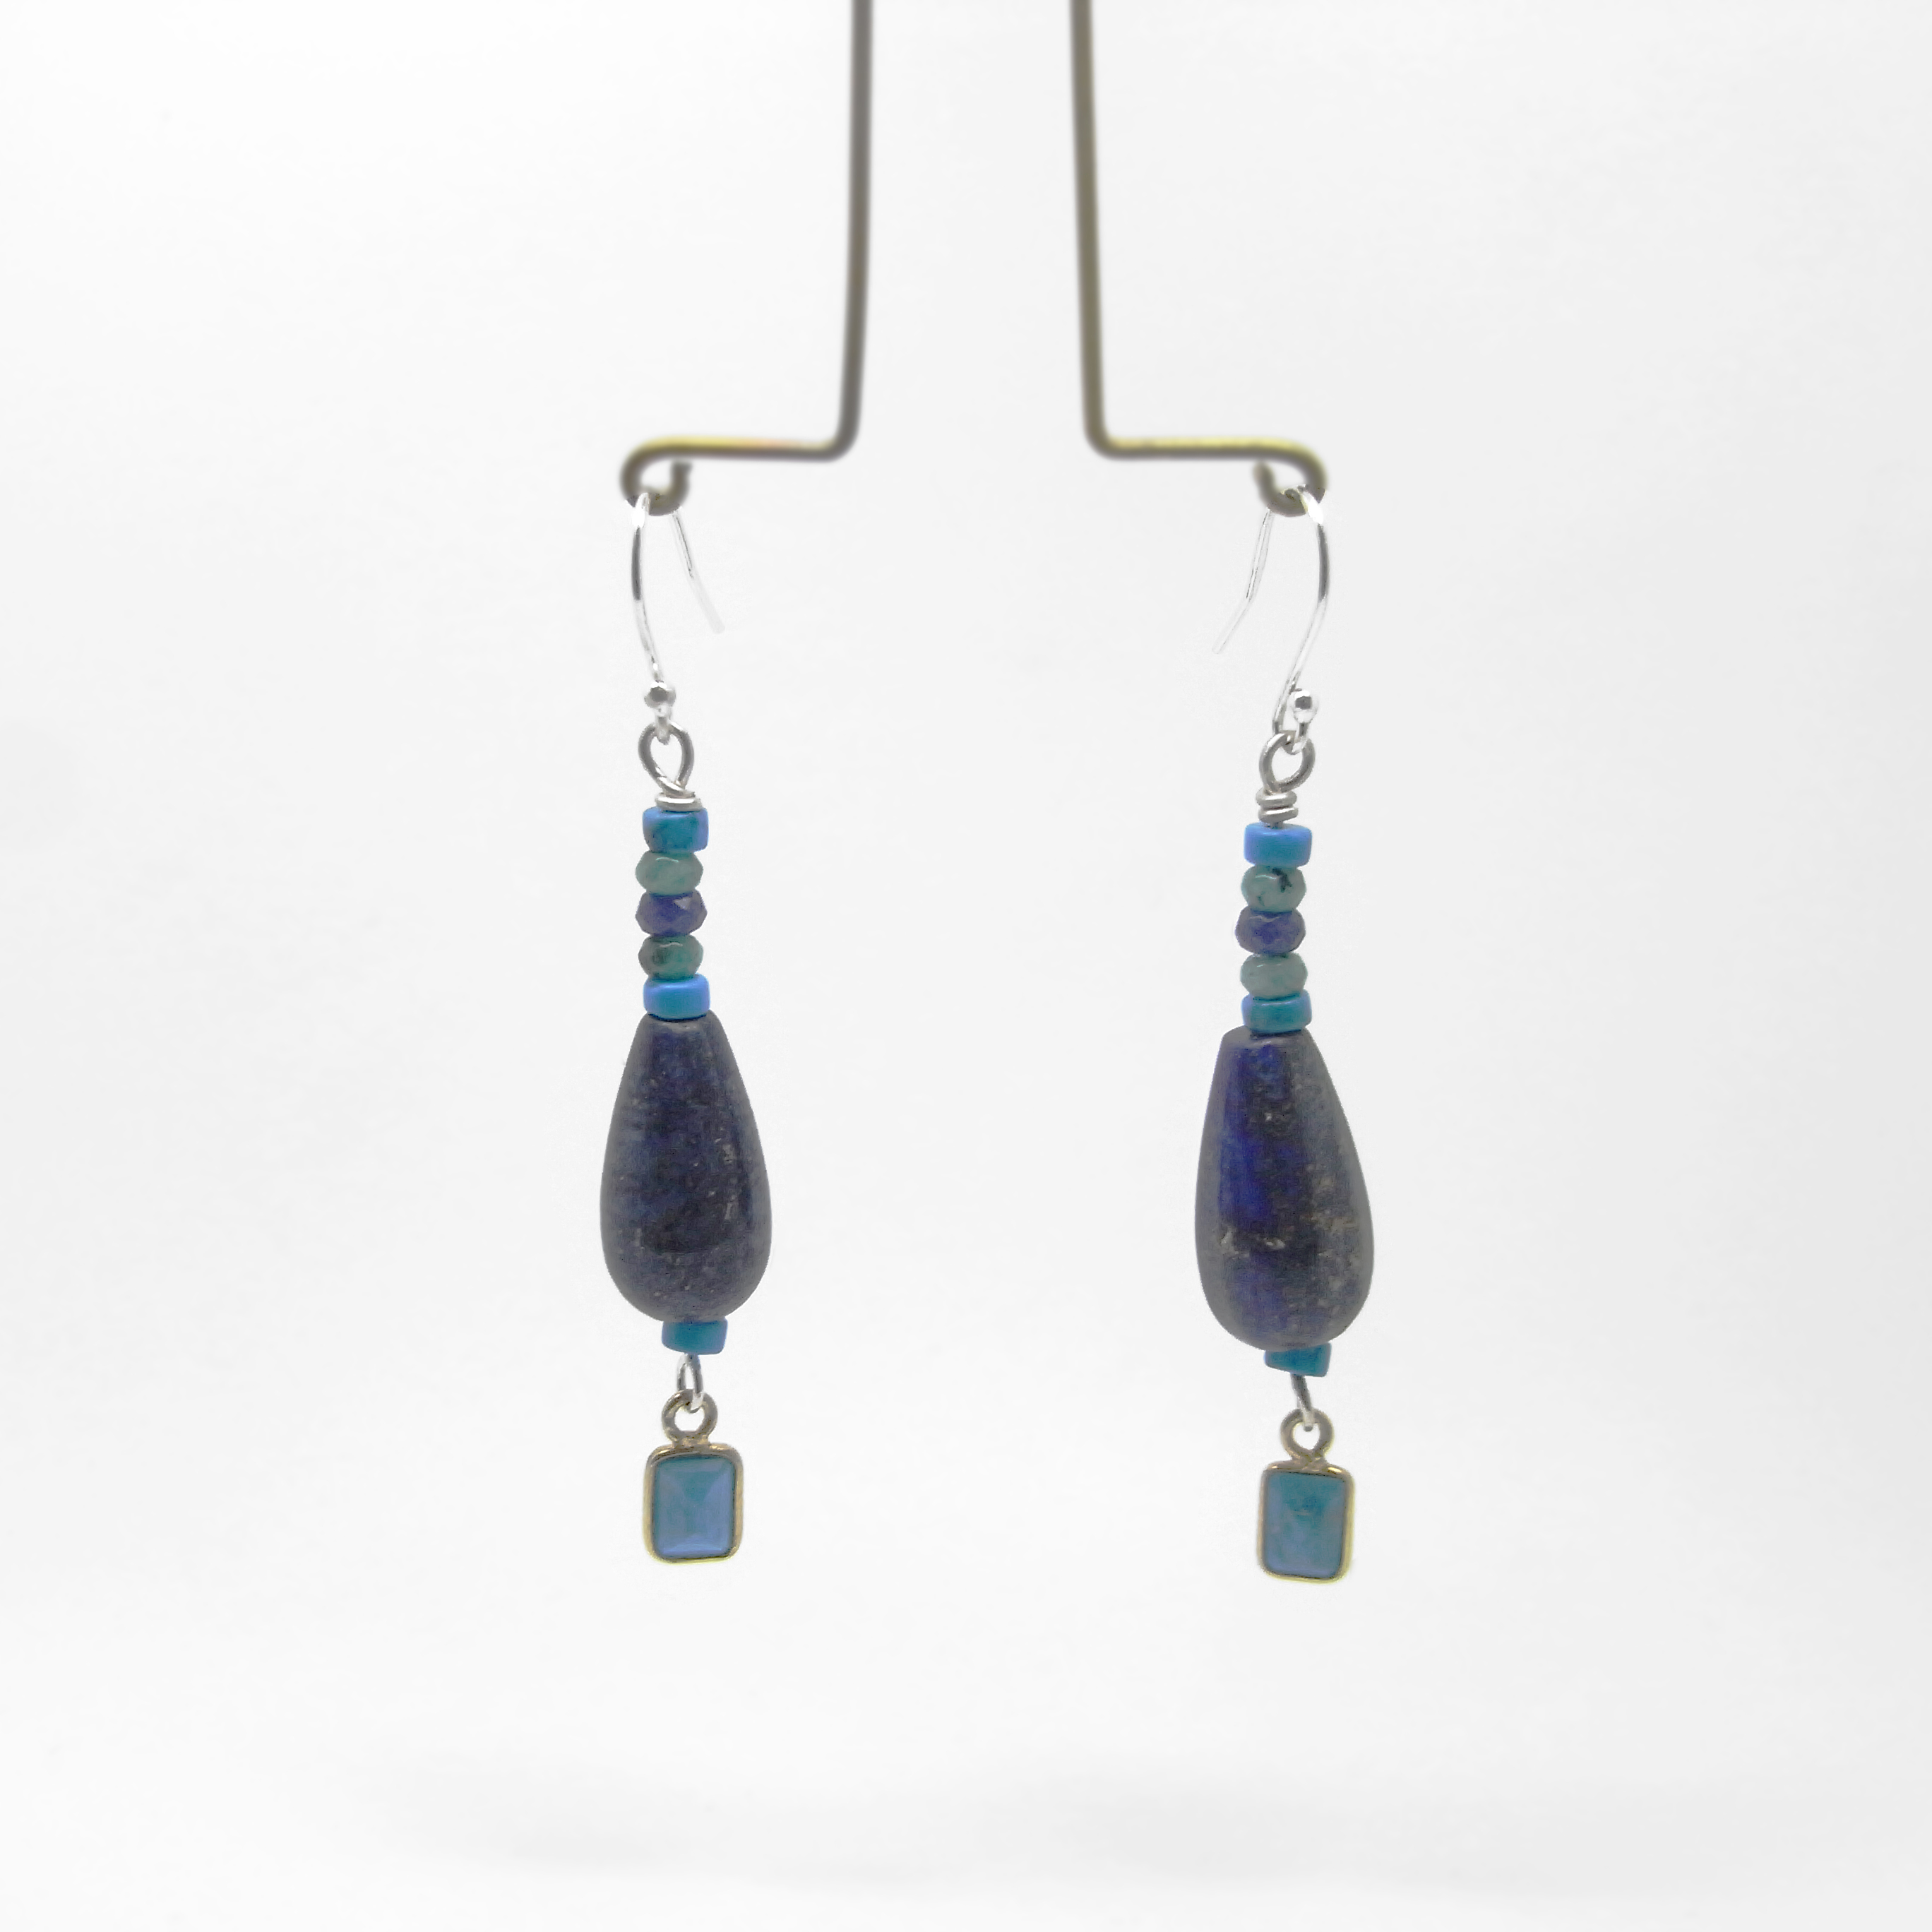 SALE - Lapis, Quarts and Turquoise Bead Earrings Long